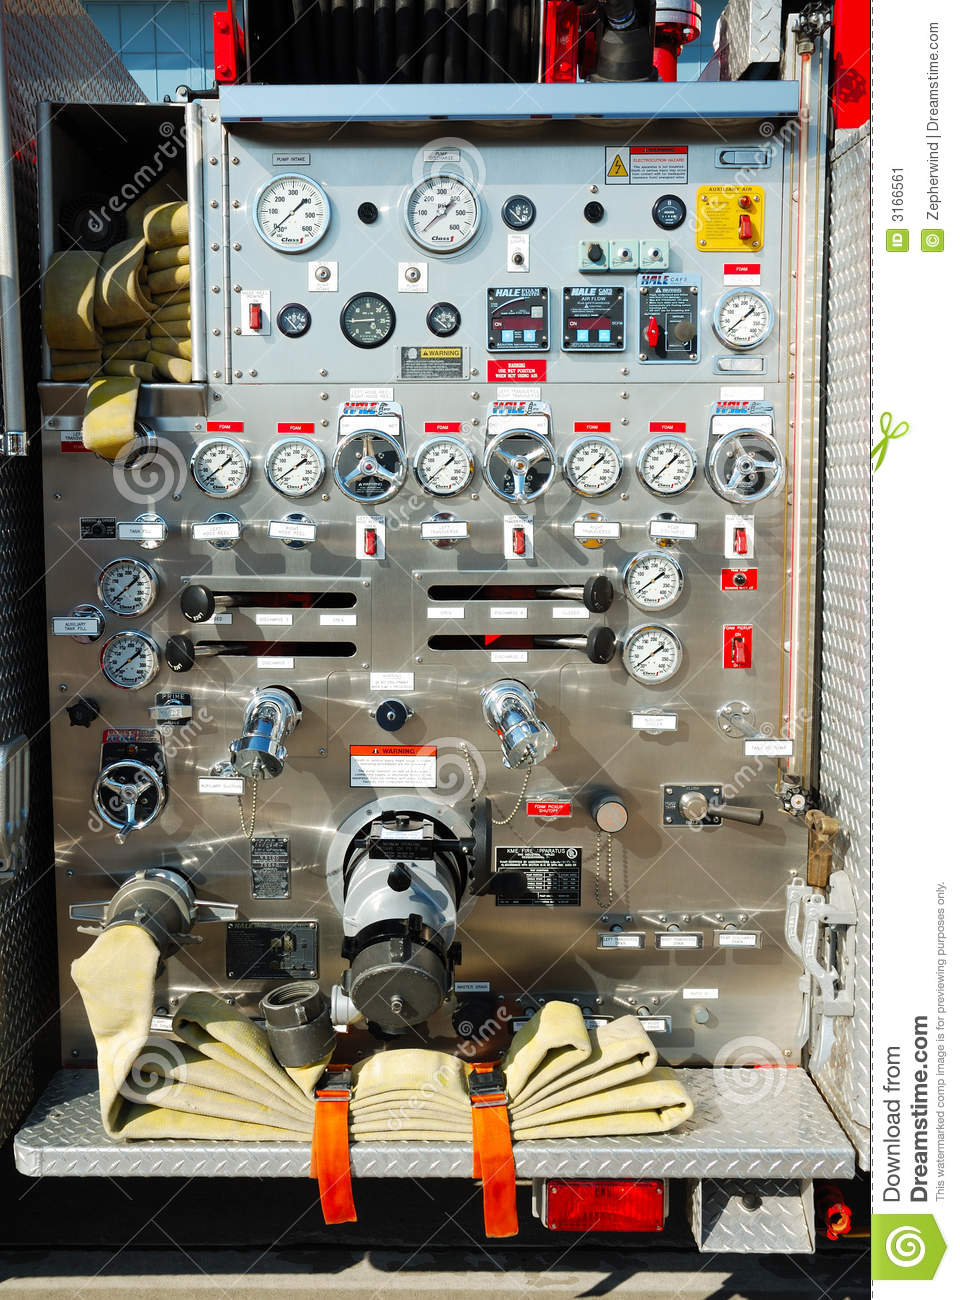 hight resolution of fire truck control panel stock image image of fight help truck engine parts diagram mack truck